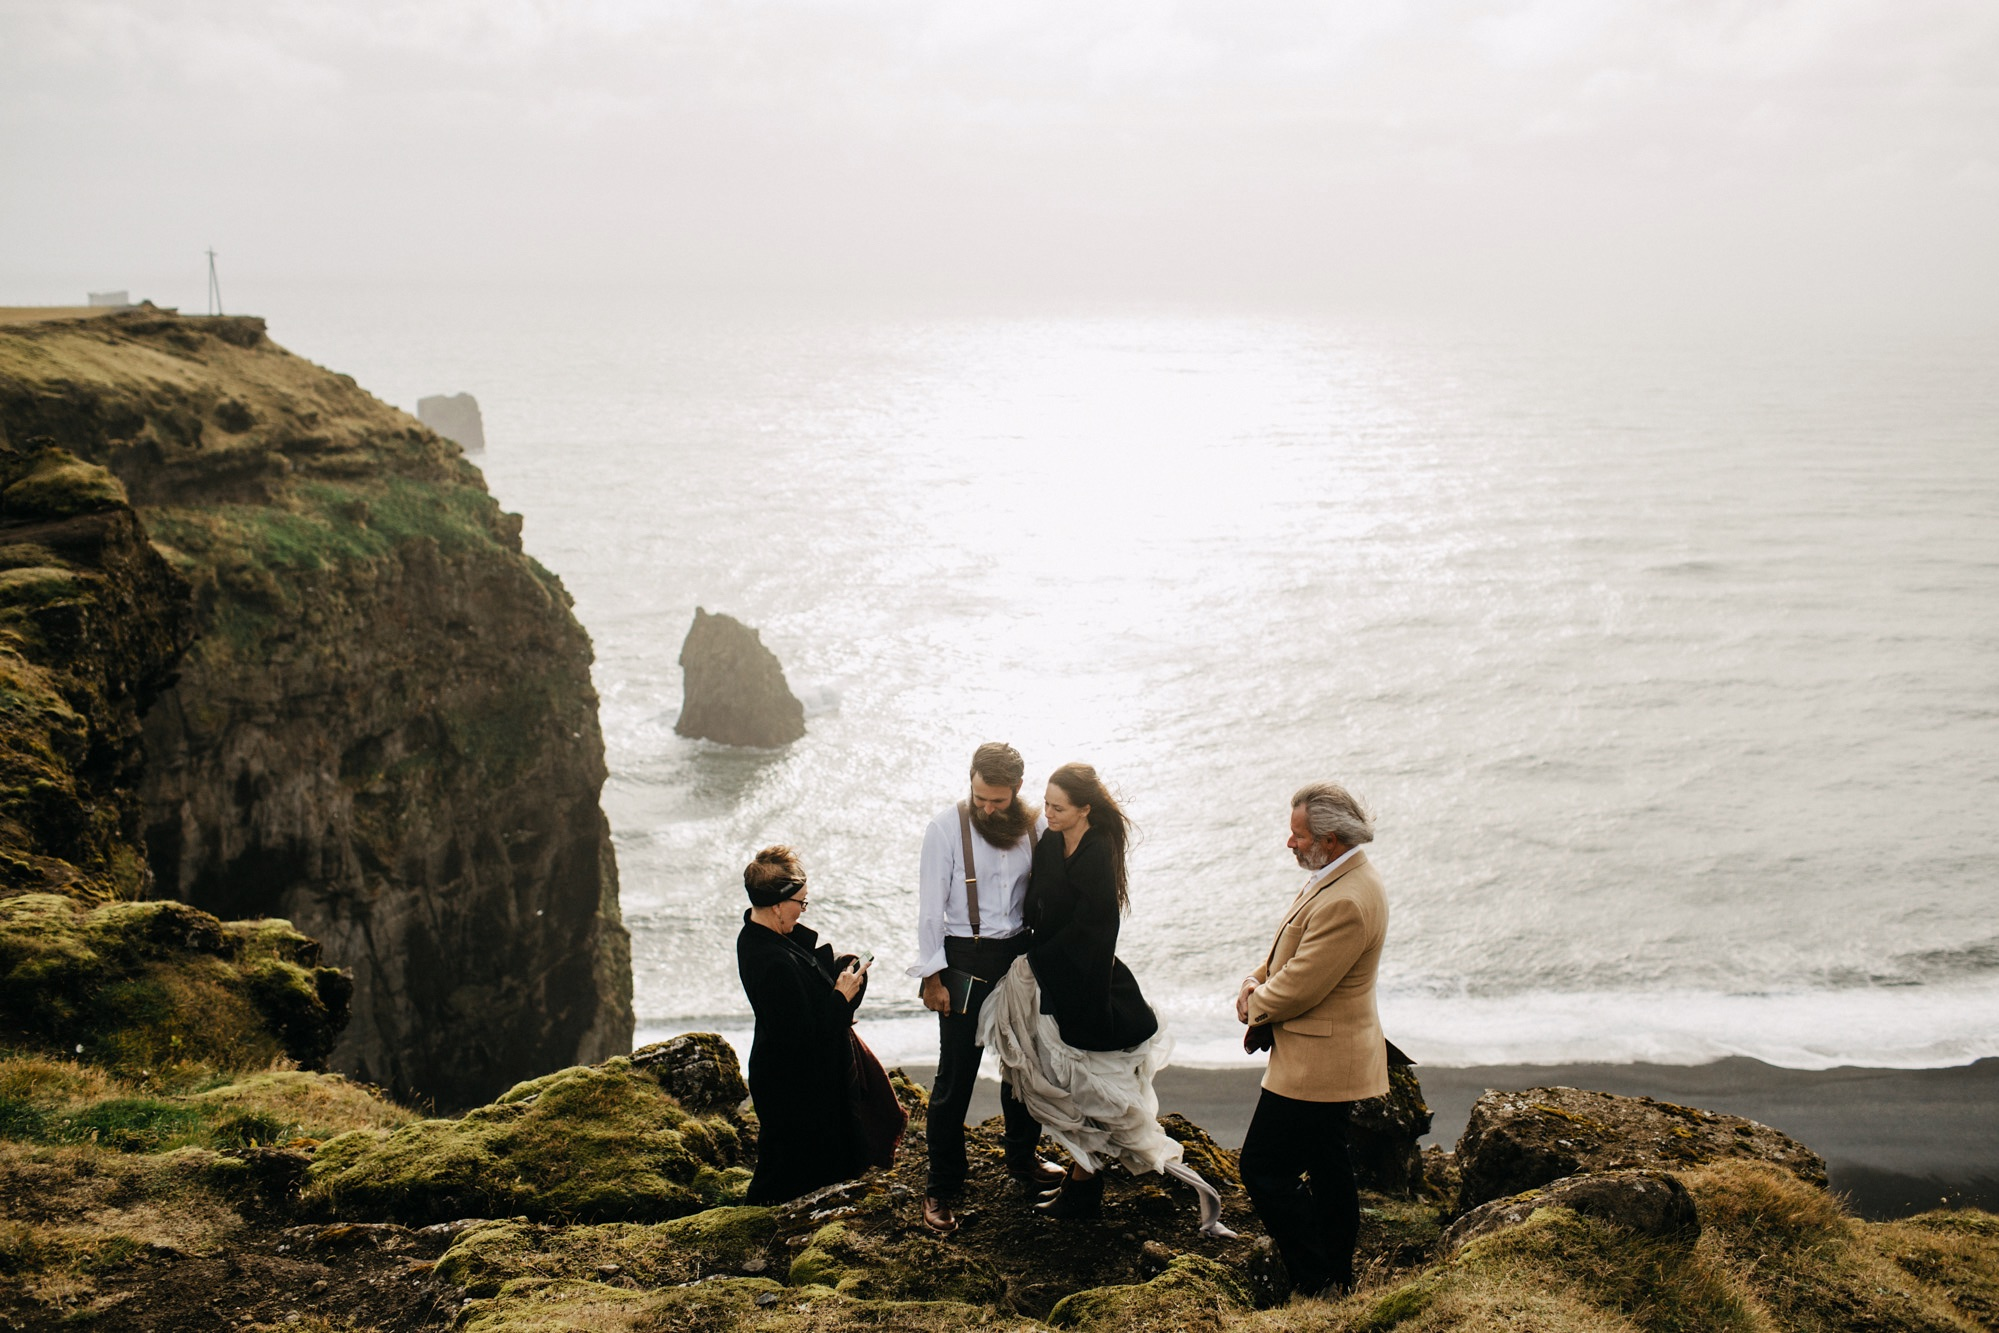 cliffside wedding ceremony in Iceland